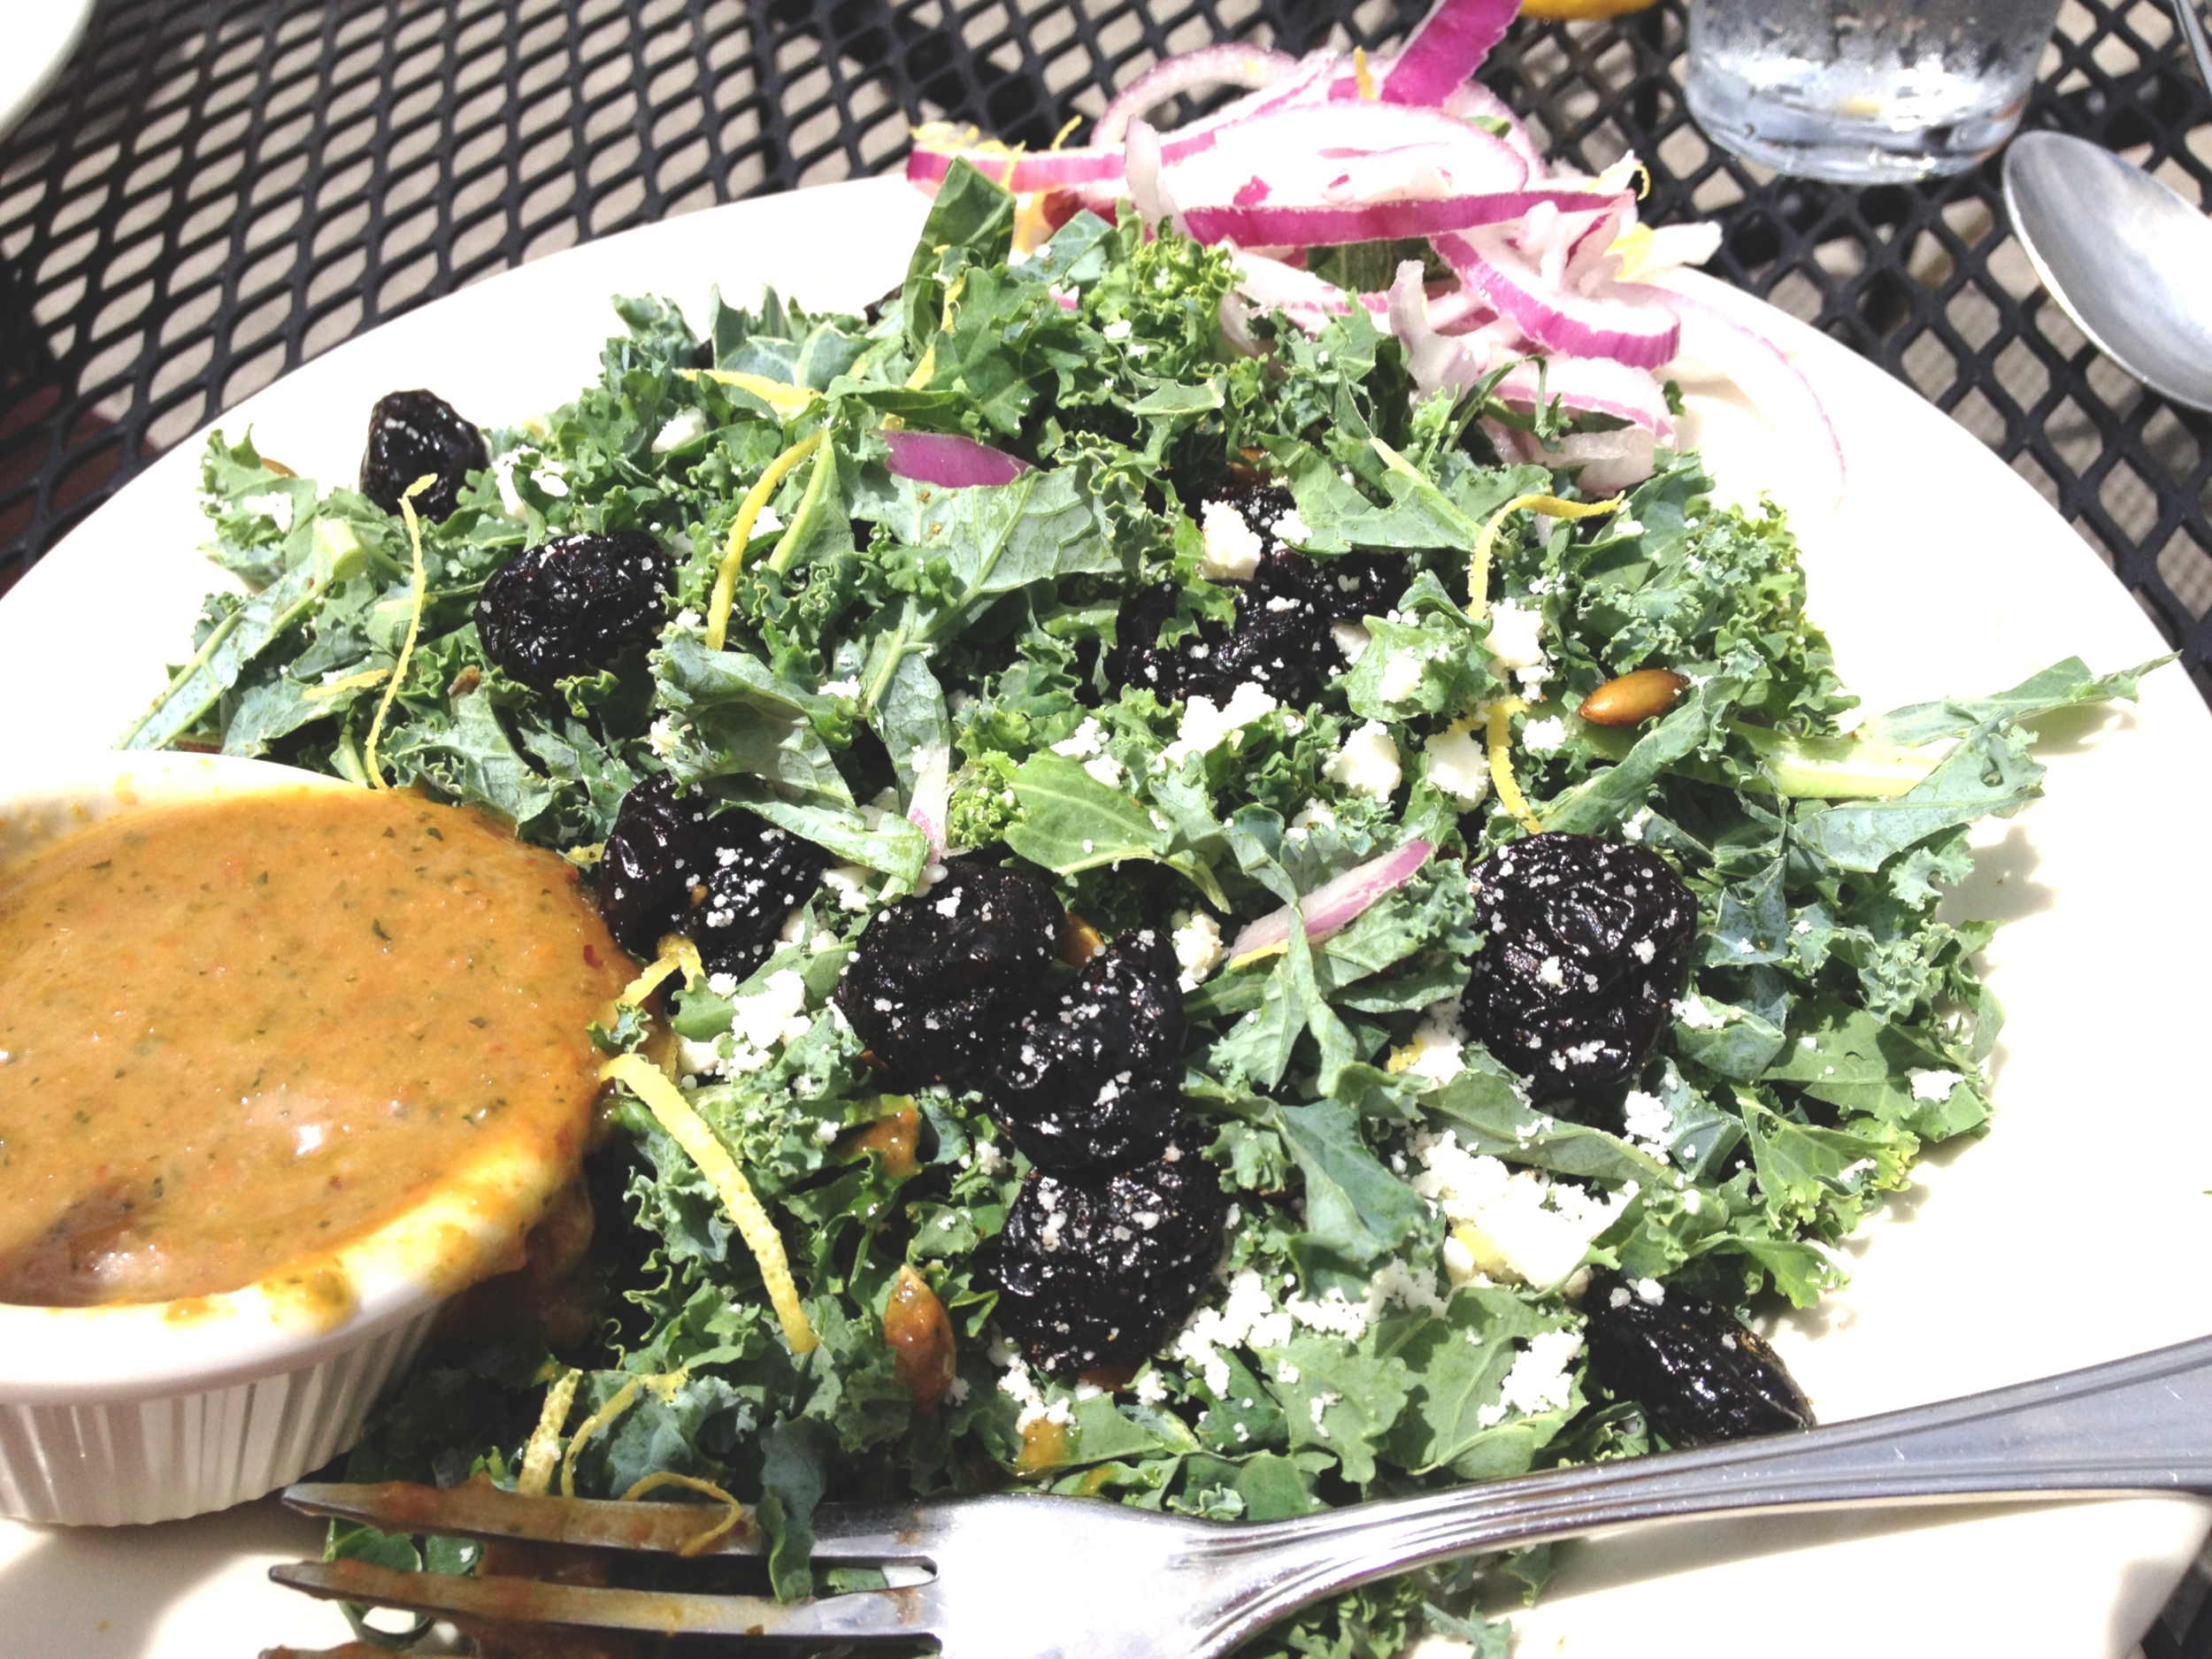 My kale salad with peanut vinaigrette on the side at Sunspot in Knoxville, TN. Not pictured: Anthony's sweet potato waffle fries :).